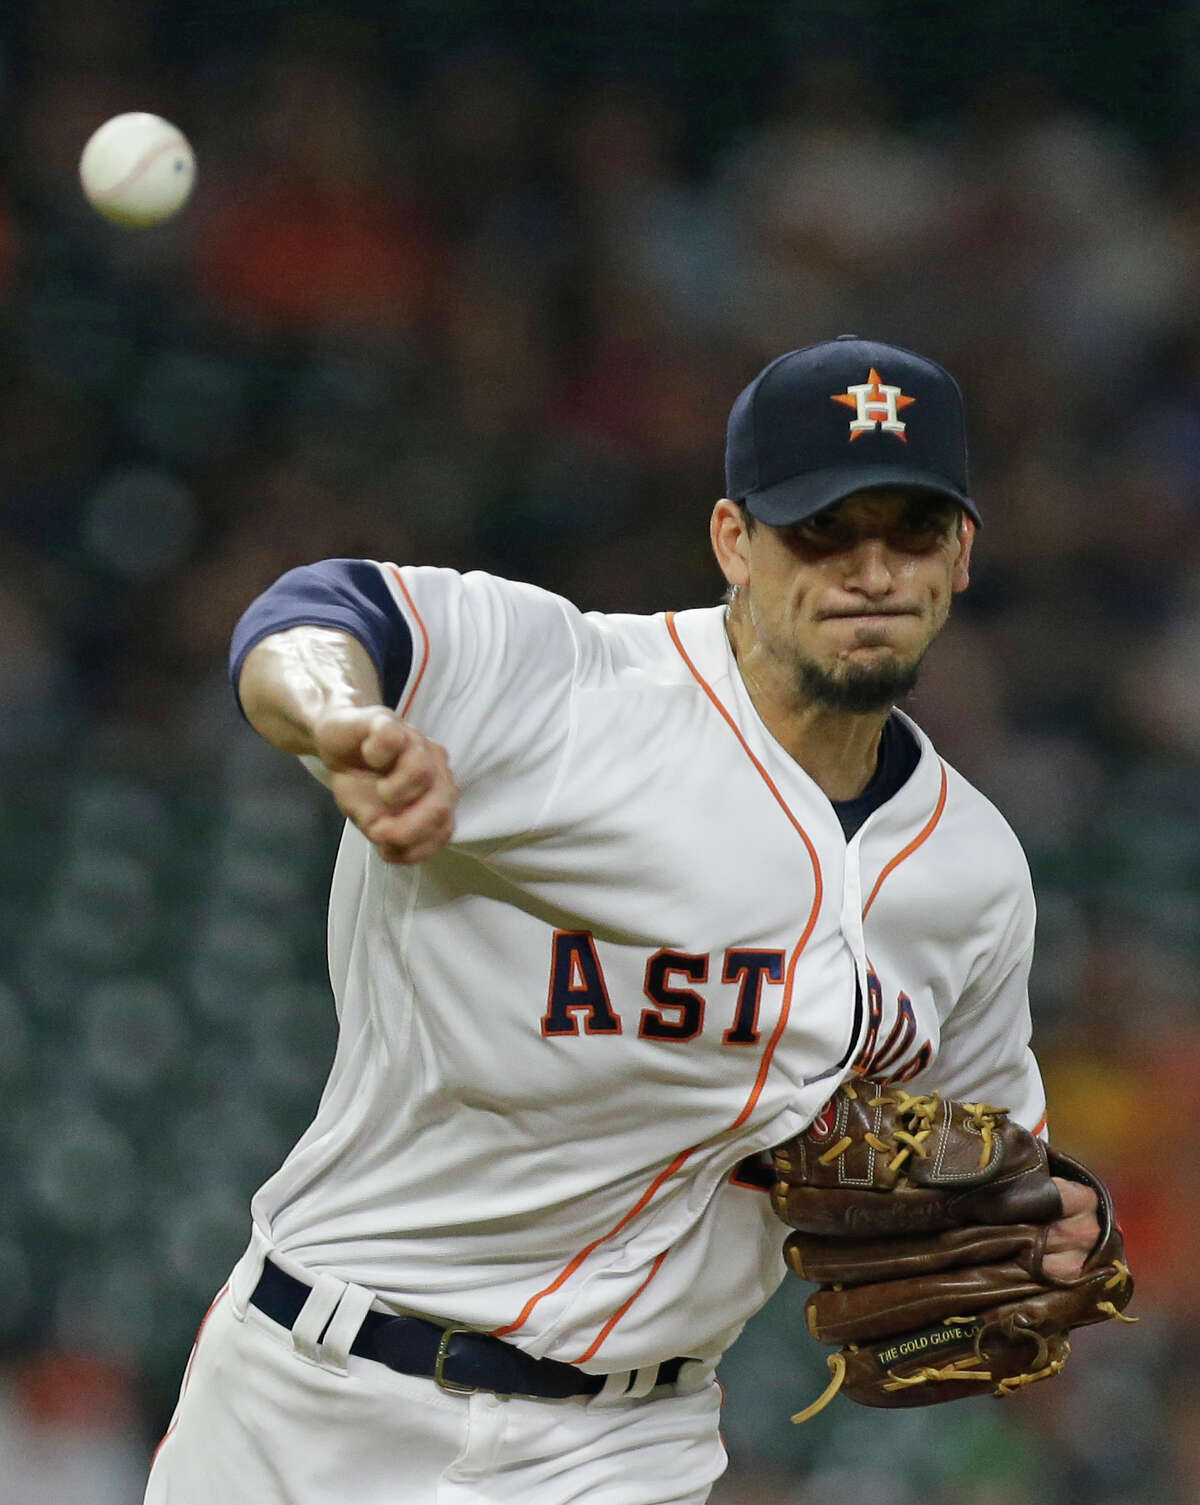 Houston Astros pitcher Charlie Morton throws to keep Texas Rangers Rougned Odor on first base during the first inning at Minute Maid Park Wednesday, May 3, 2017, in Houston. ( Melissa Phillip / Houston Chronicle )